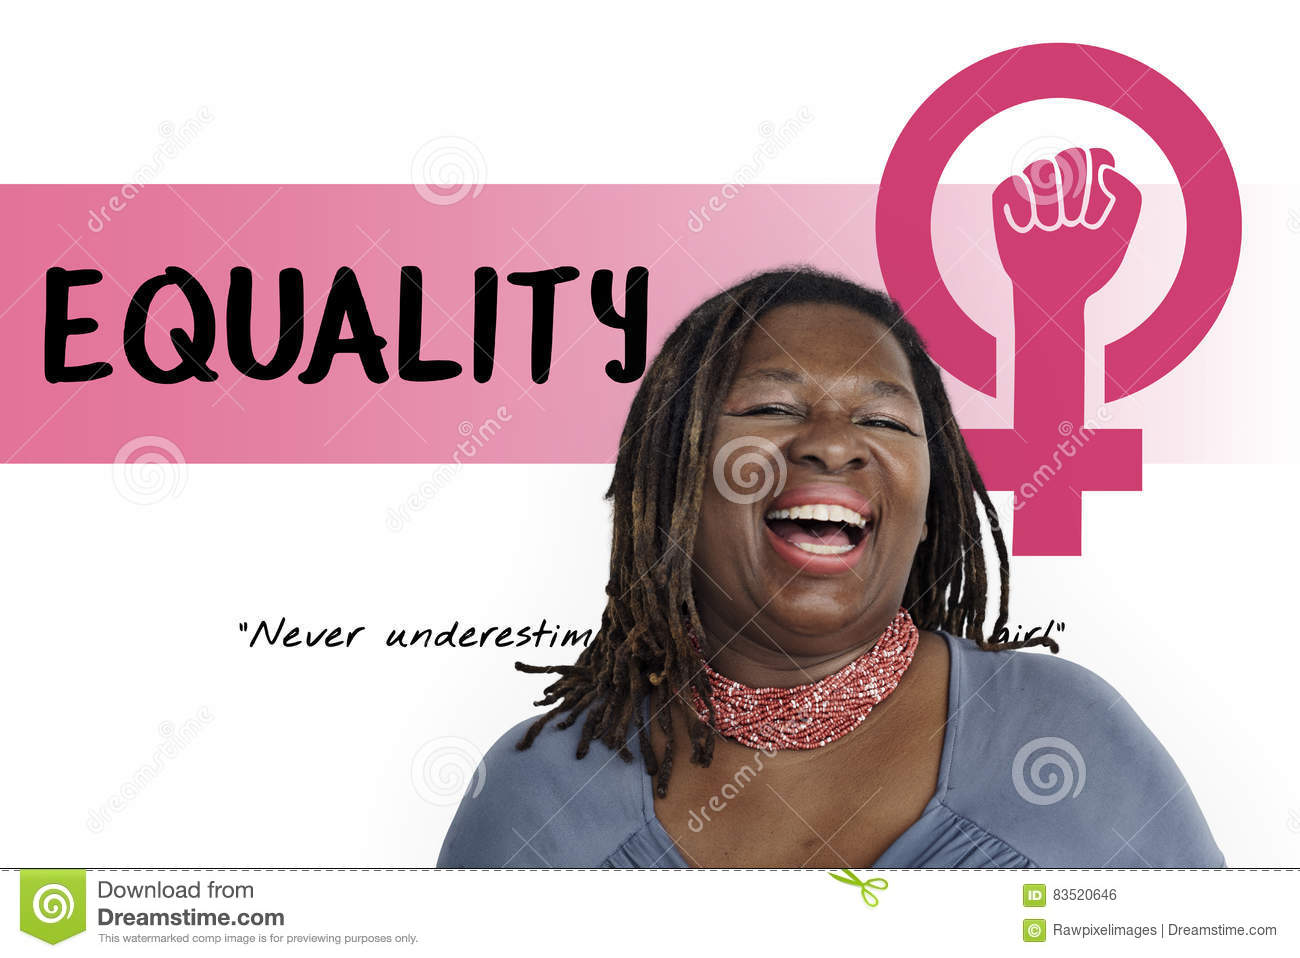 Download Women Girl Power Feminism Equal Opportunity Concept Stock Photo - Image of equal, people: 83520646